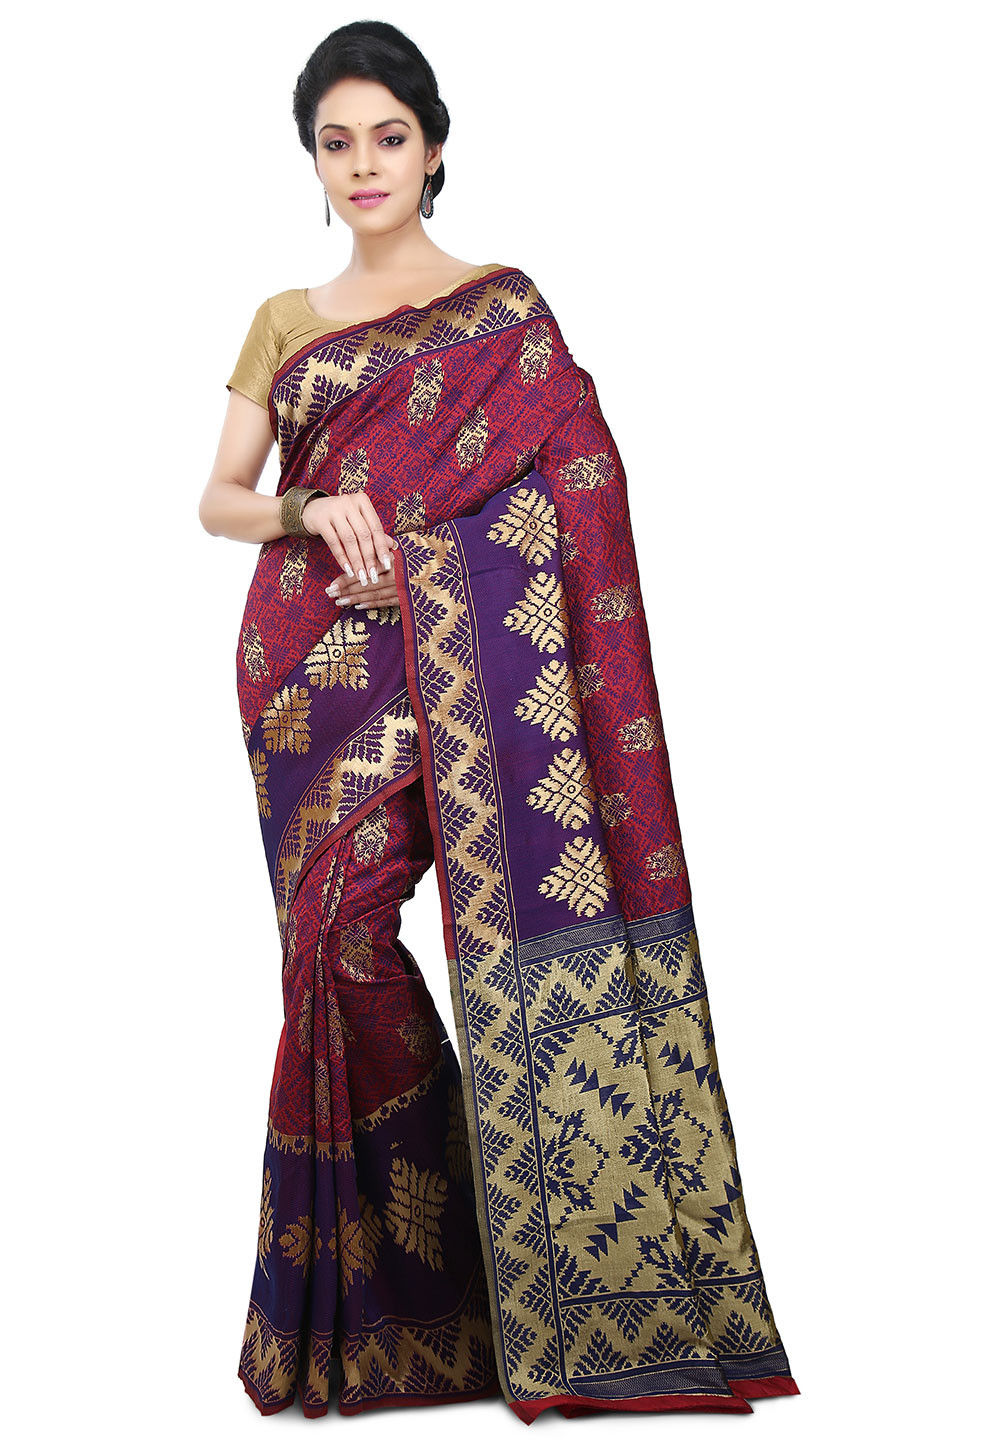 Woven Brocade Silk Saree in Red